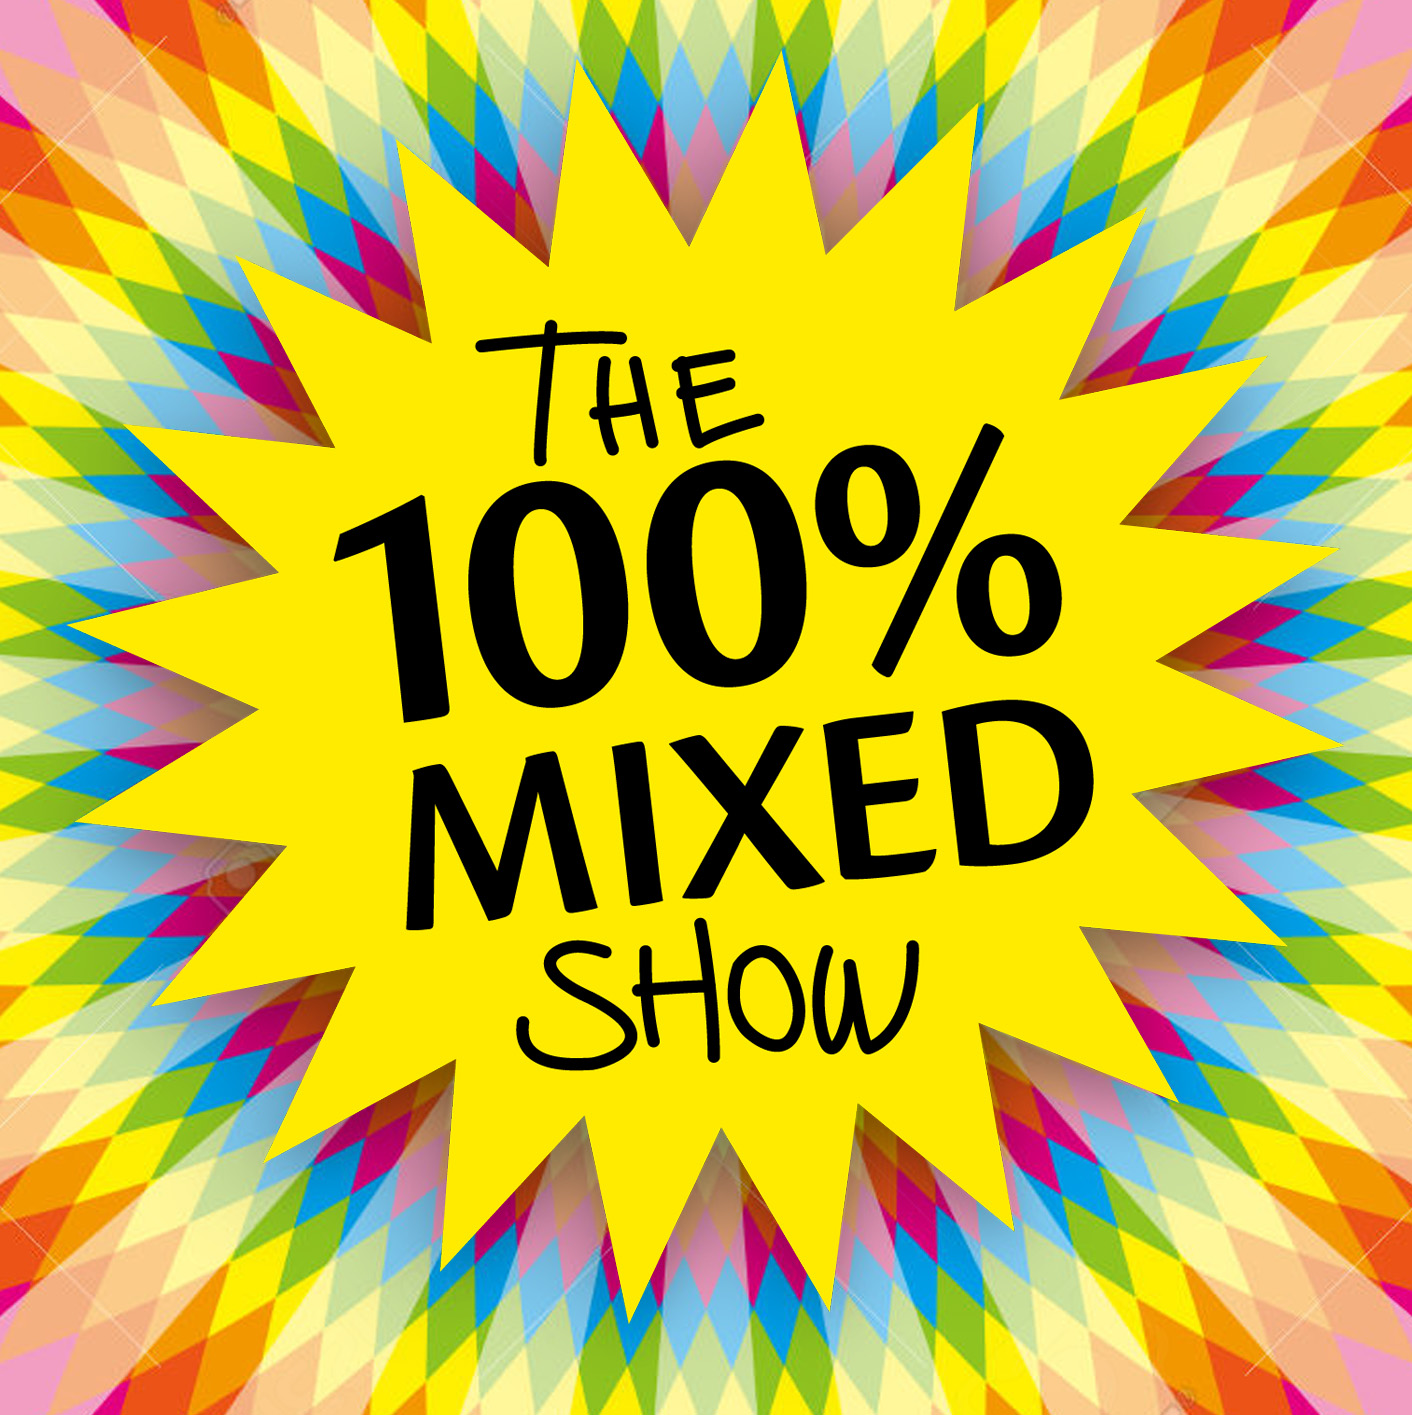 100% Mixed Show Podcast - The 100% Mixed Show